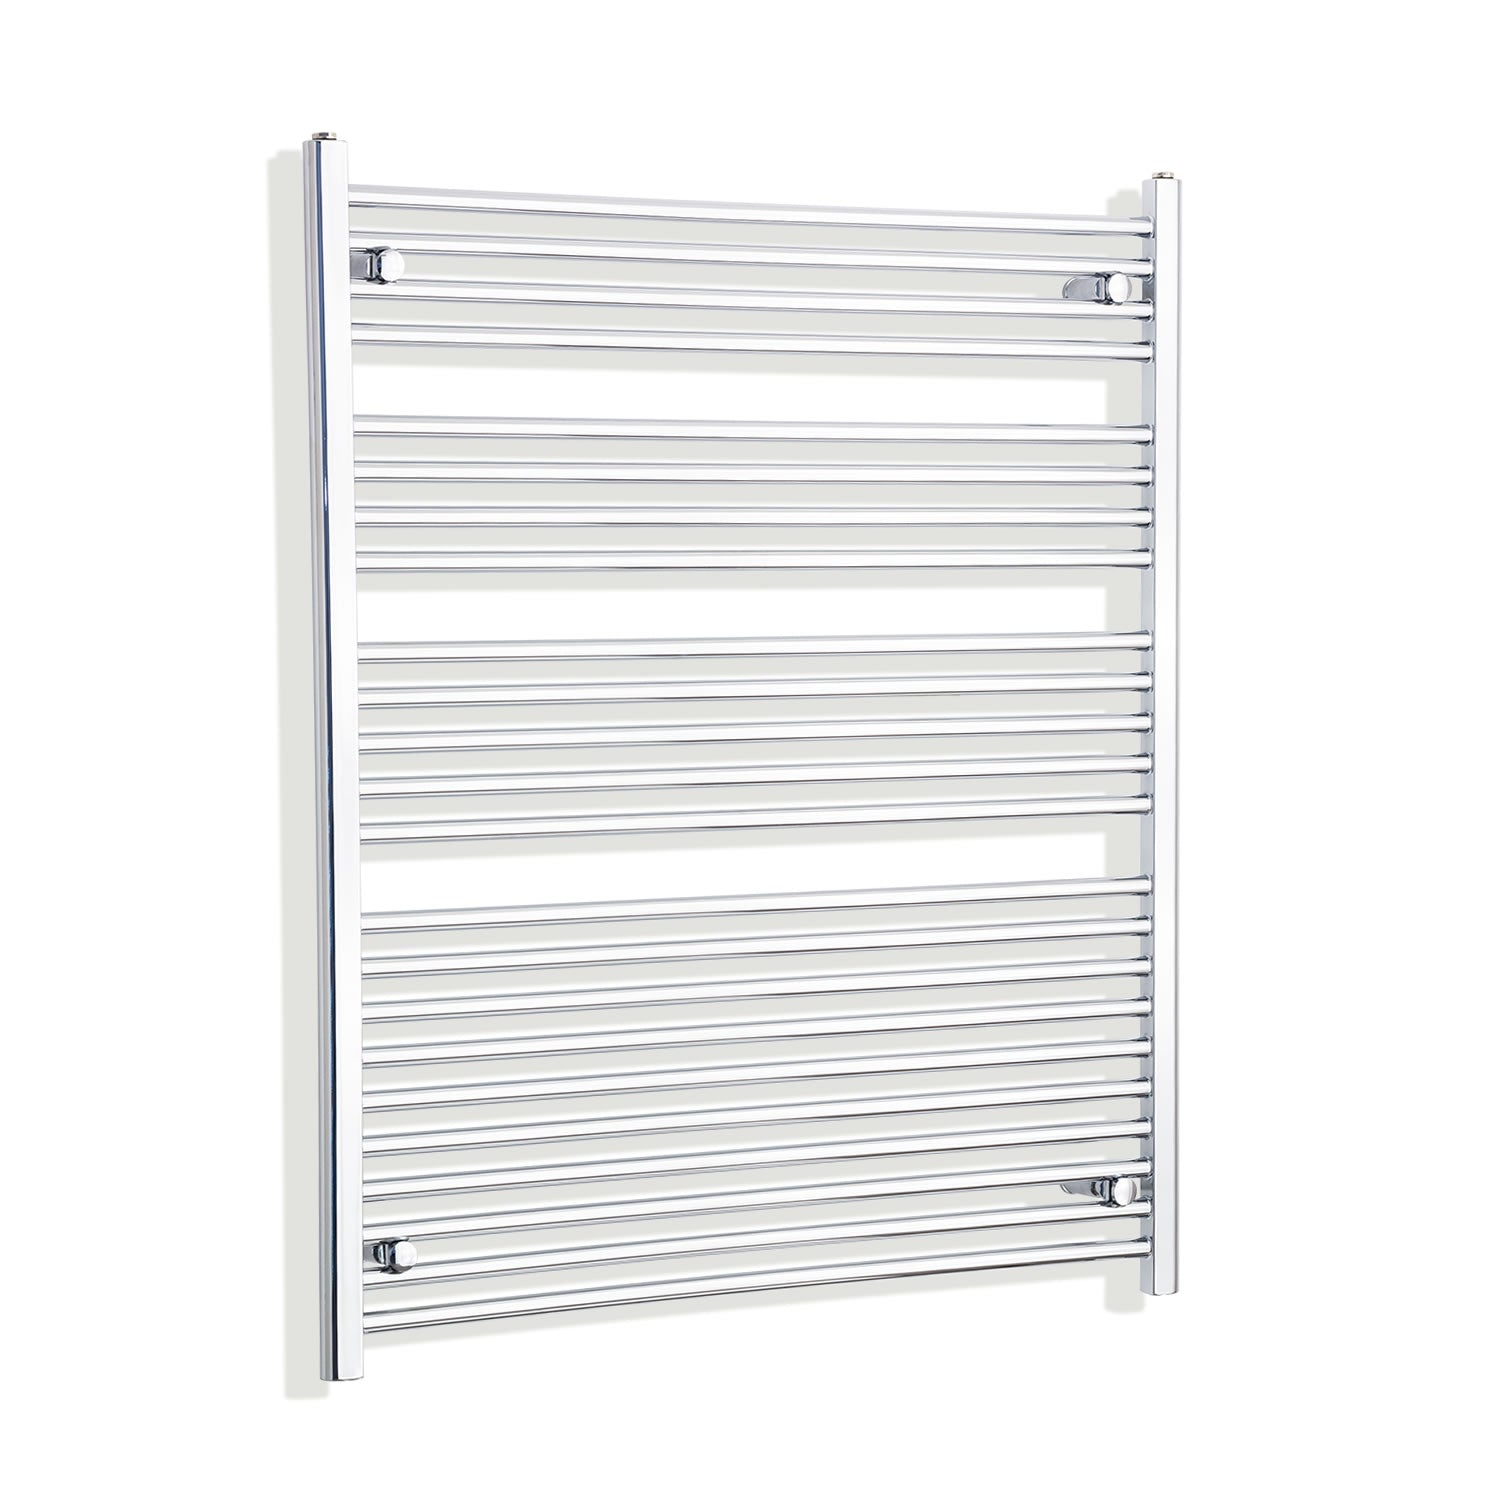 950mm Wide 1200mm High Flat Chrome Heated Towel Rail Radiator HTR,With Straight Valve